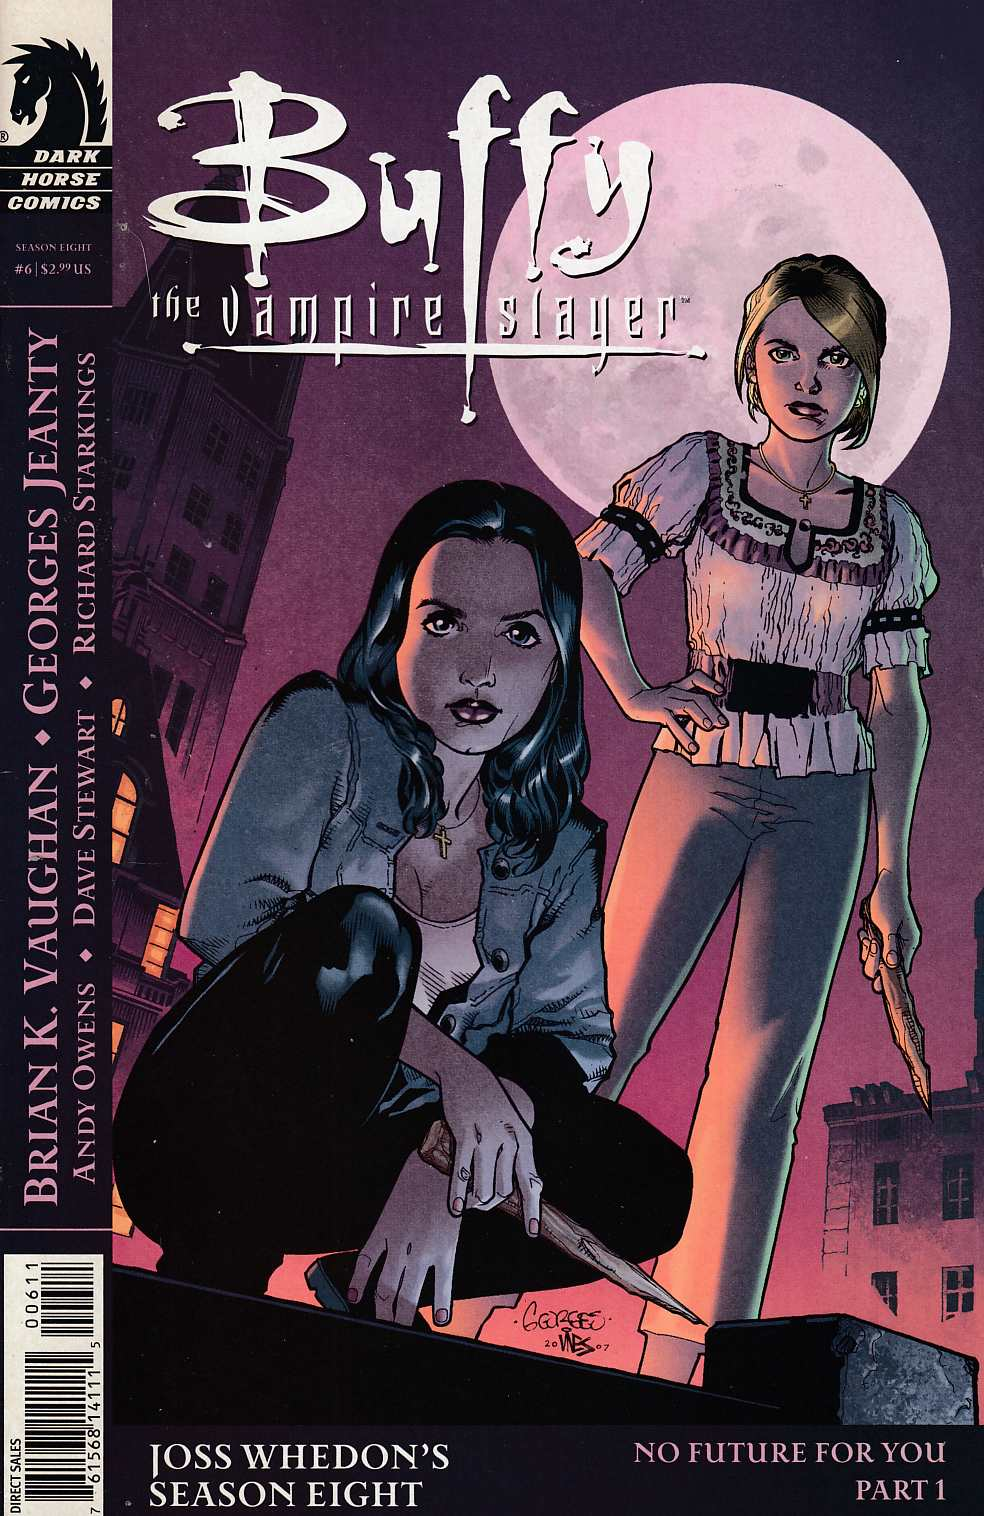 Buffy the Vampire Slayer Season 8 #6 Cover B Very Fine (8.0) [Dark Horse Comic] THUMBNAIL